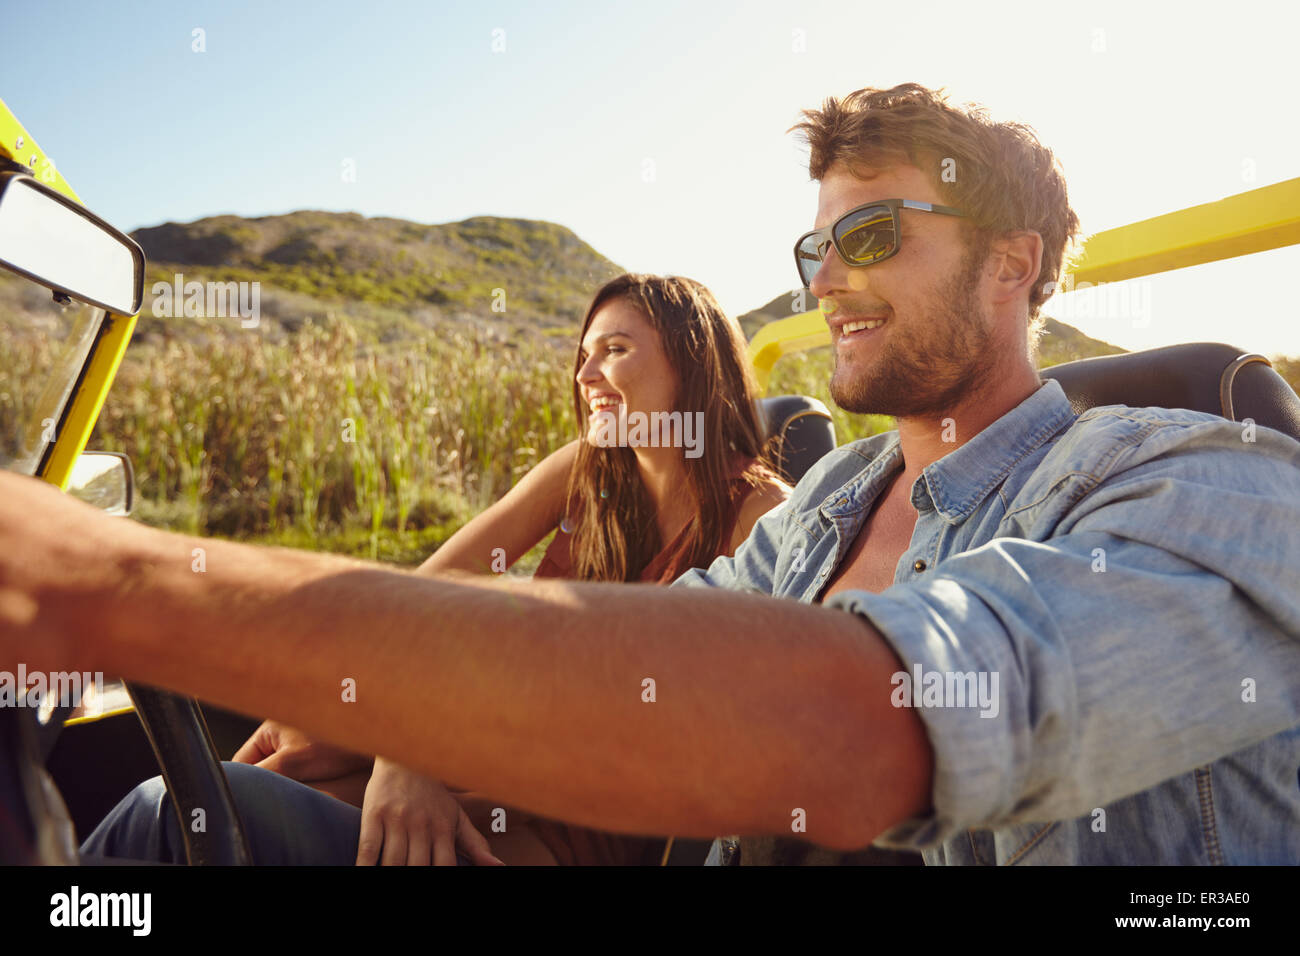 Young friends out for a drive together in a open topped car. Couple on road trip in a car. - Stock Image